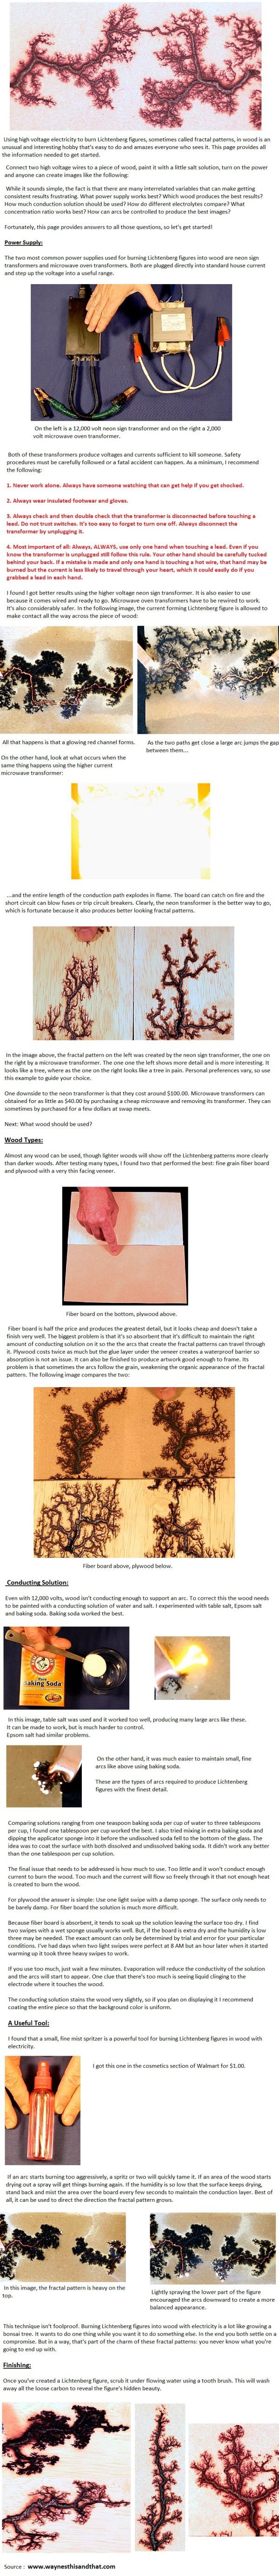 fractal lichtenberg figure wood burning with electricity by